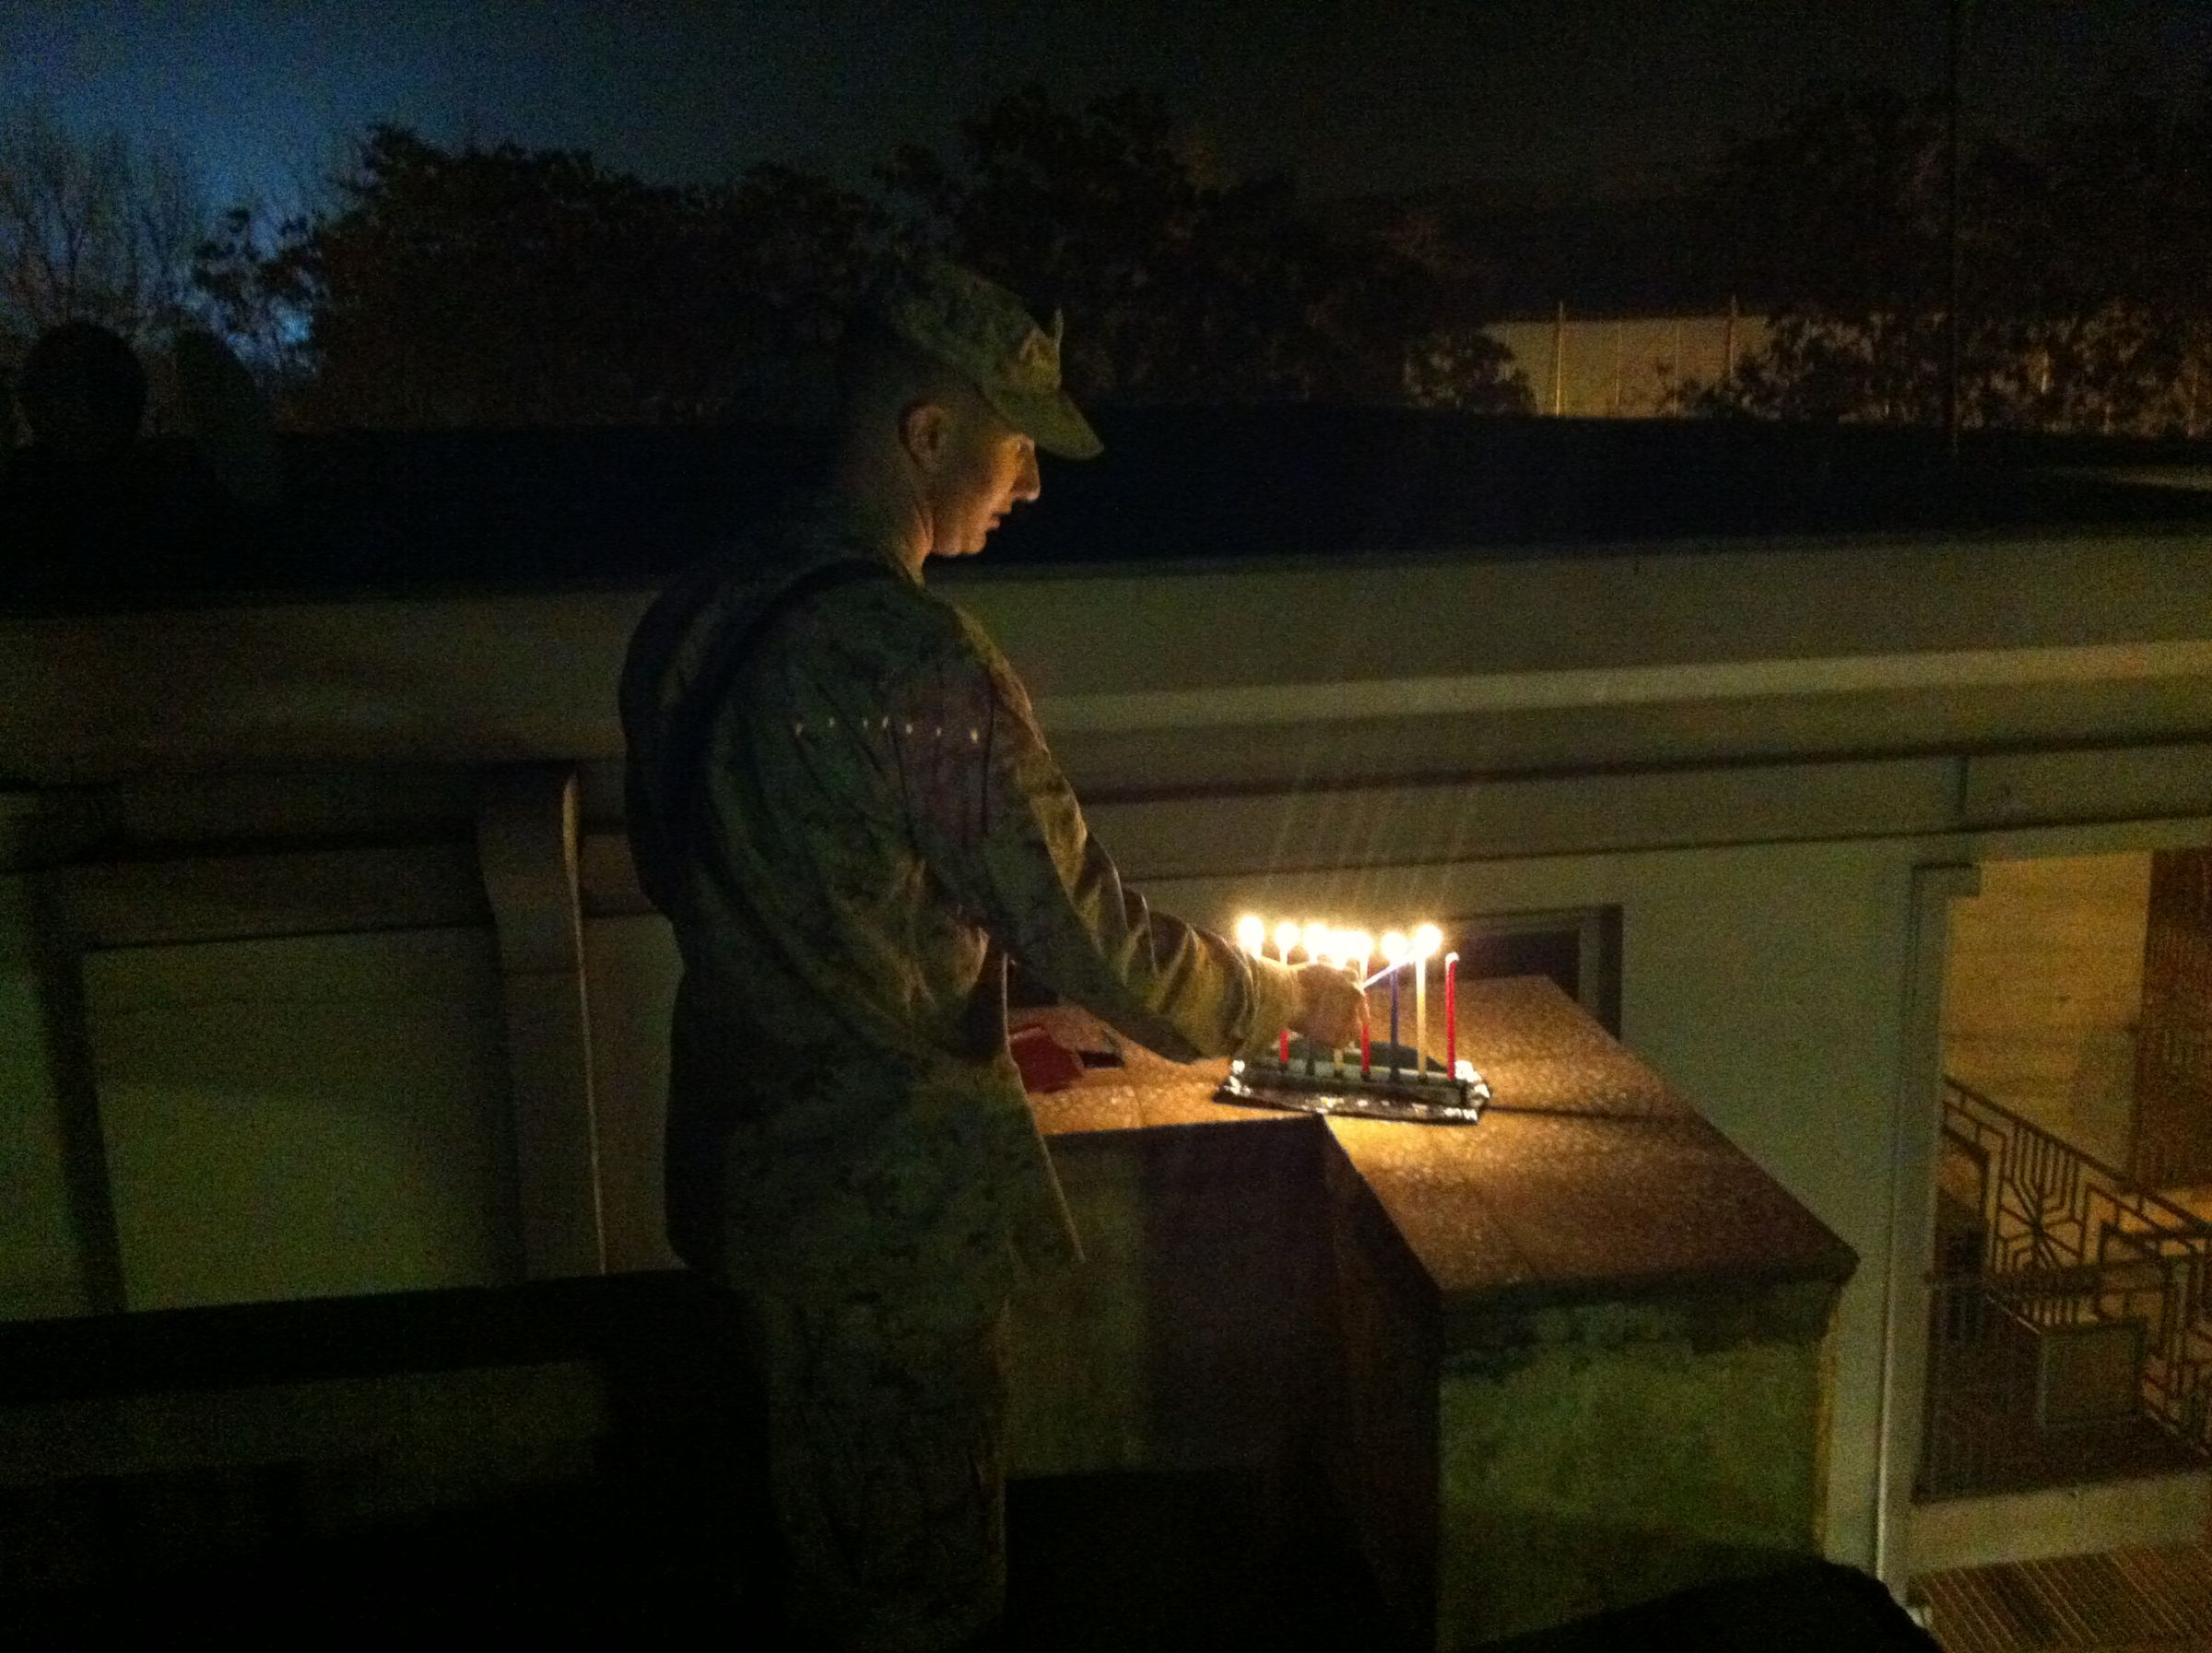 BT alum Josh Chinsky '01 lighting the Menorah in Kabul, Afghanistan